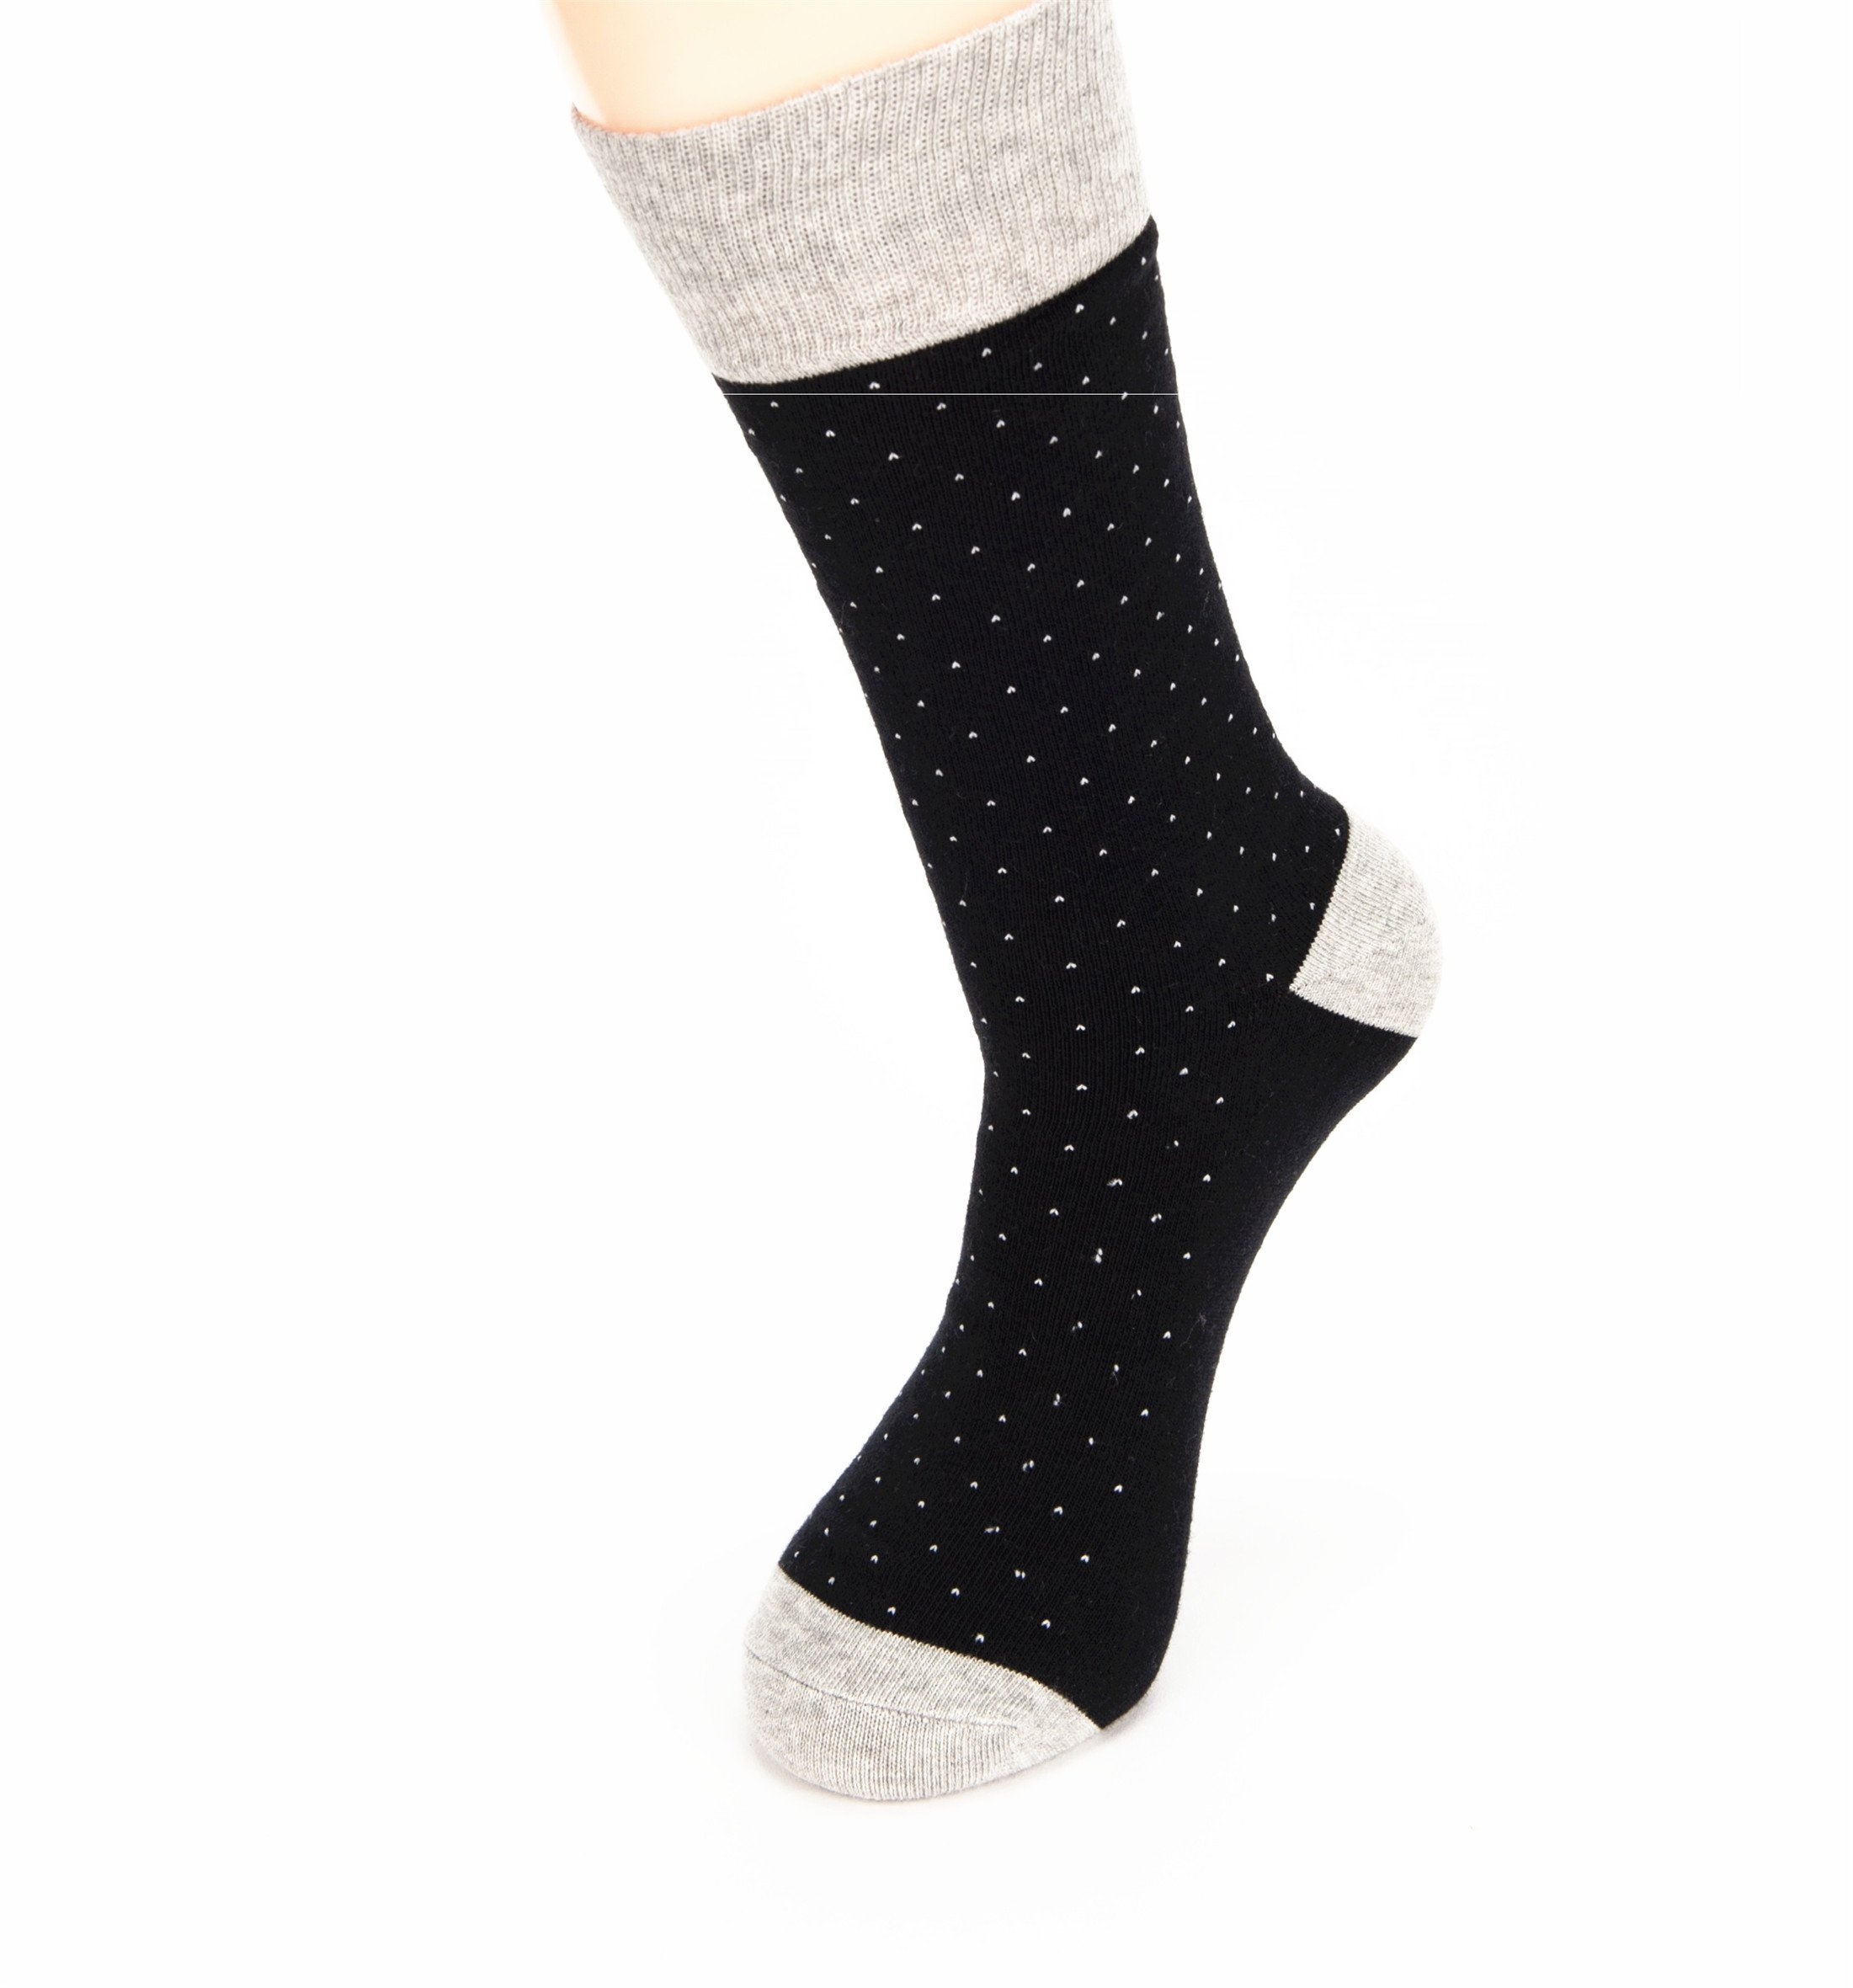 Hapyfost 6 Pack Men's Socks Dots Crew Dress Socks, 10-13 (BLACK)